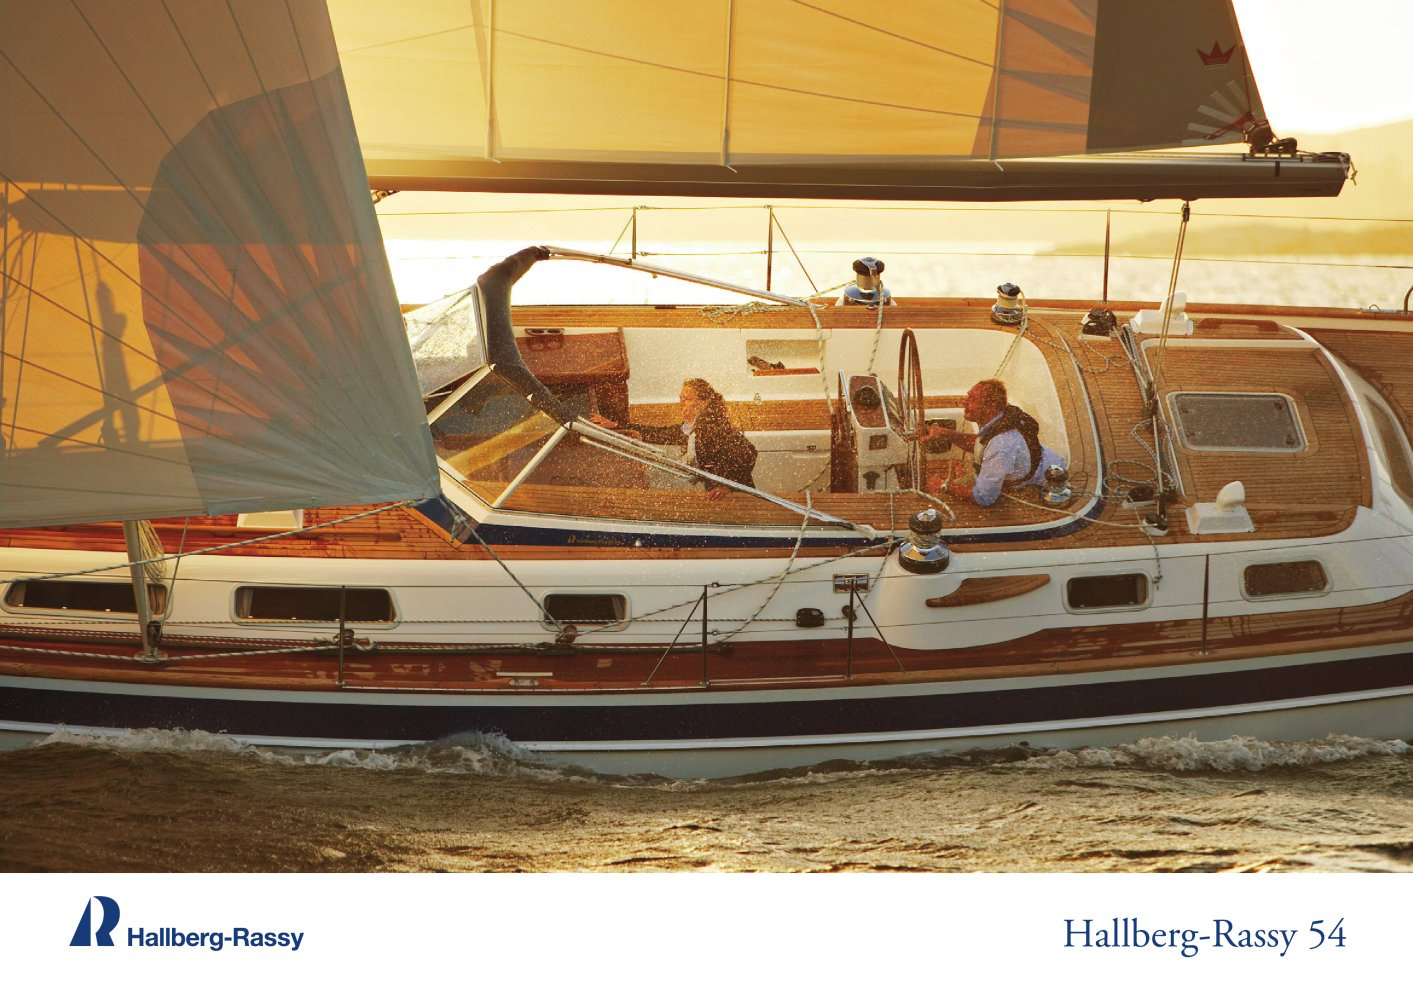 HR 54 - Hallberg-Rassy. See other catalogues for Hallberg-Rassy